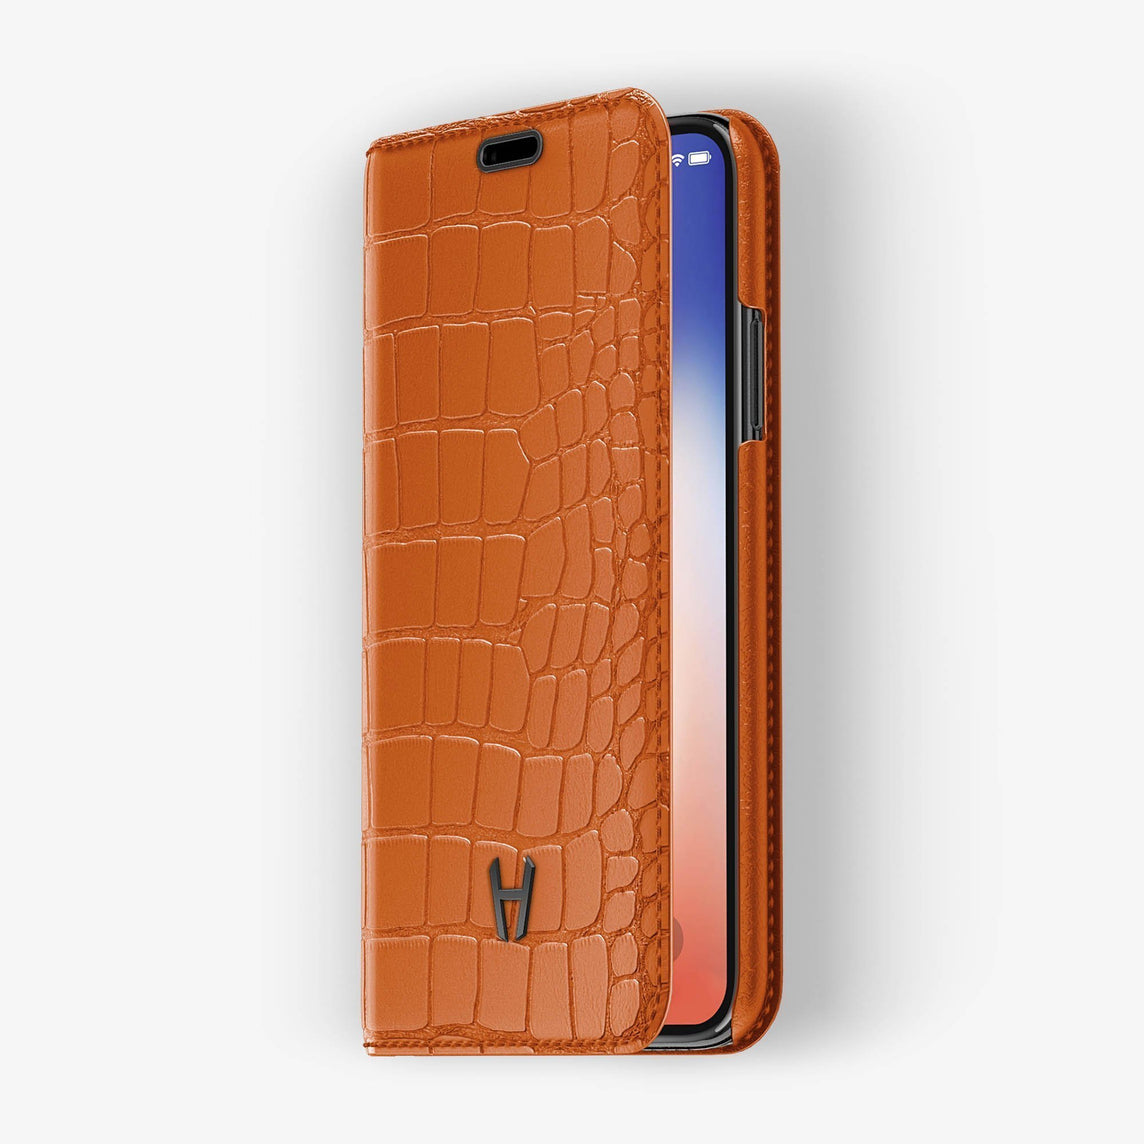 Orange Alligator iPhone Folio Case for iPhone XS Max finishing black - Hadoro Luxury Cases